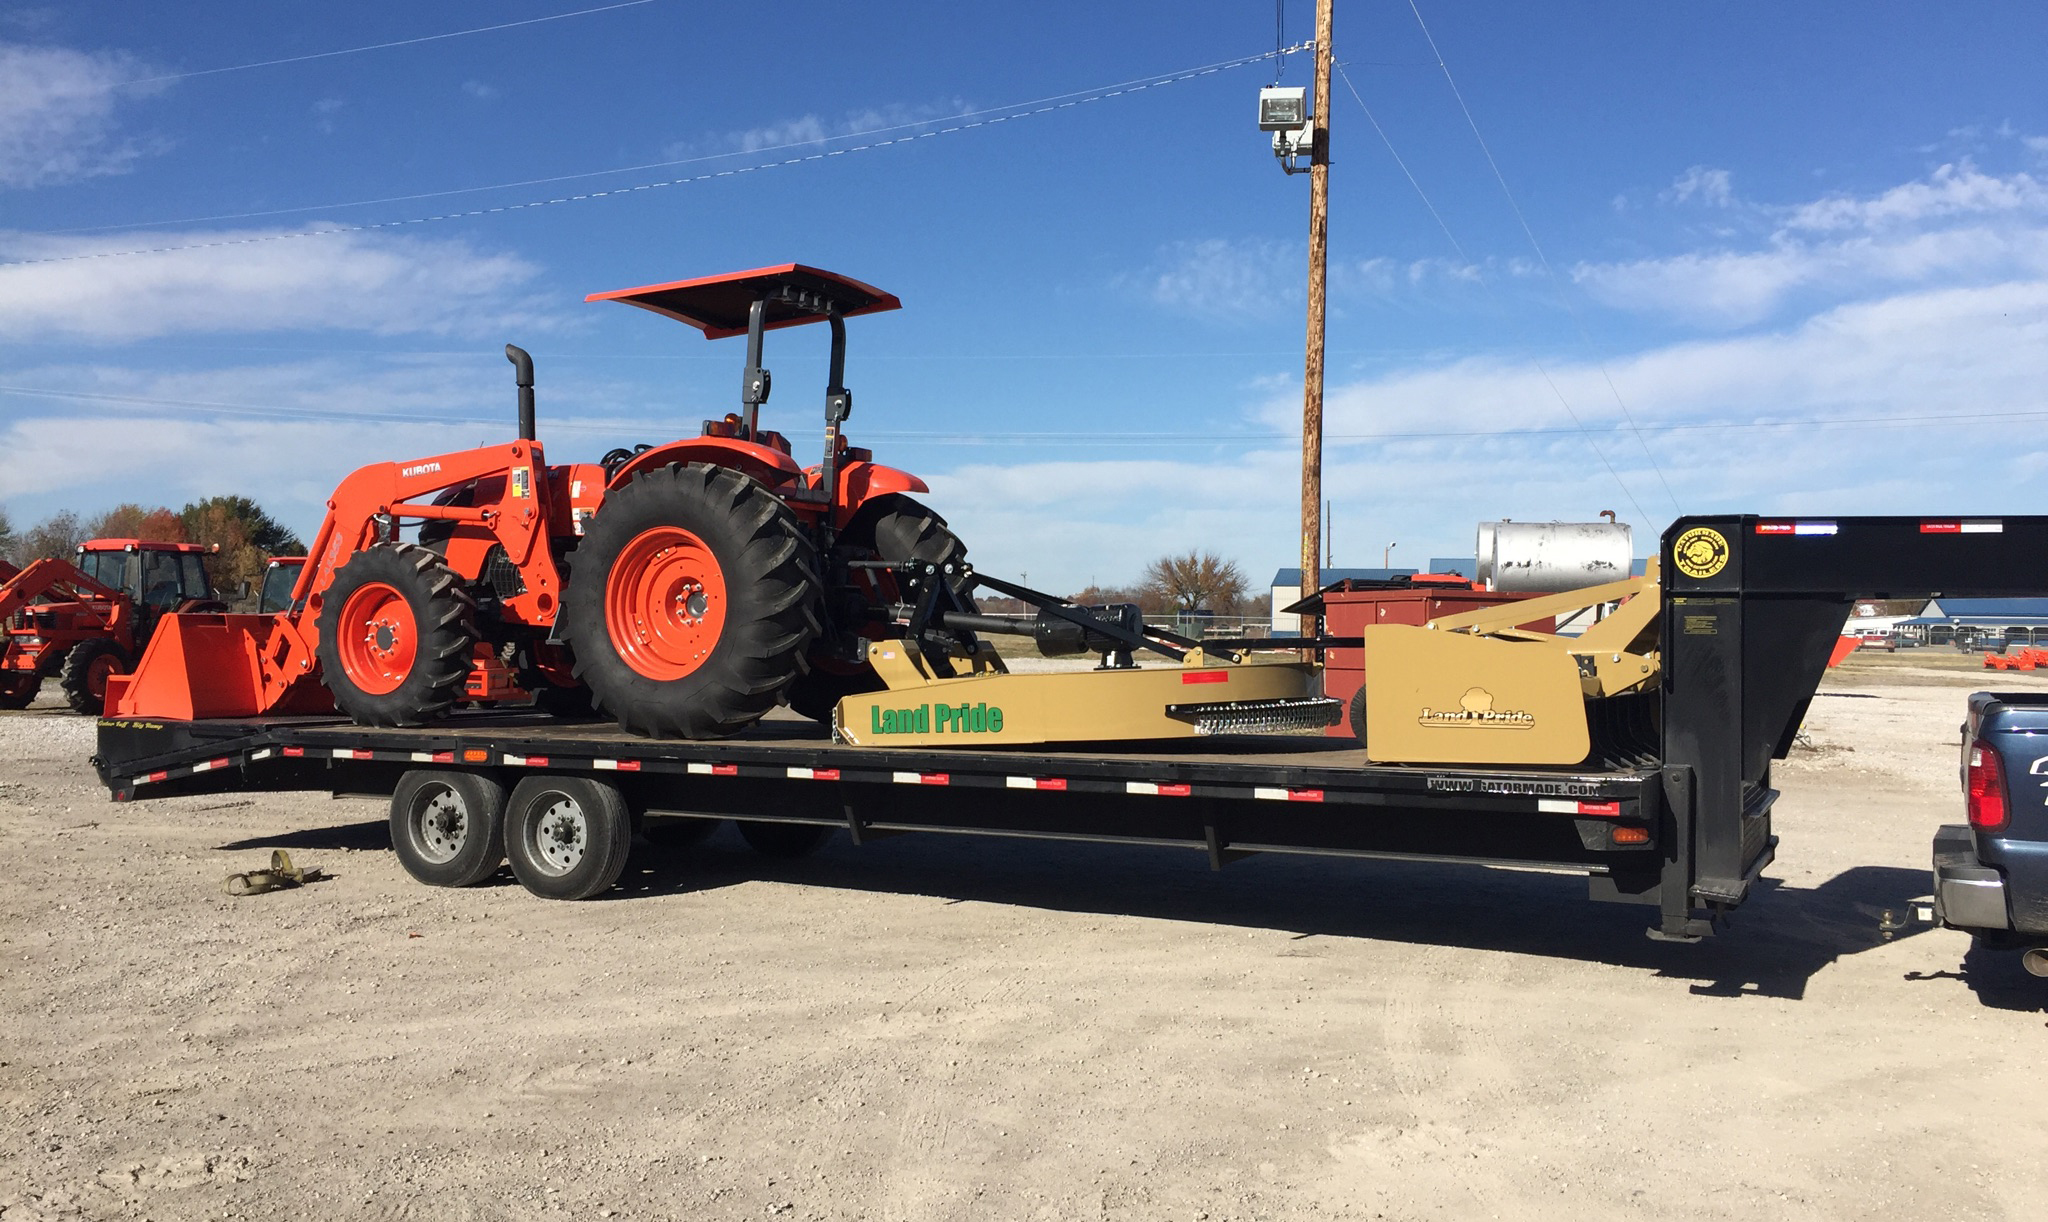 Transporting Kubota L3000DT Loader with Land Pride Attachments